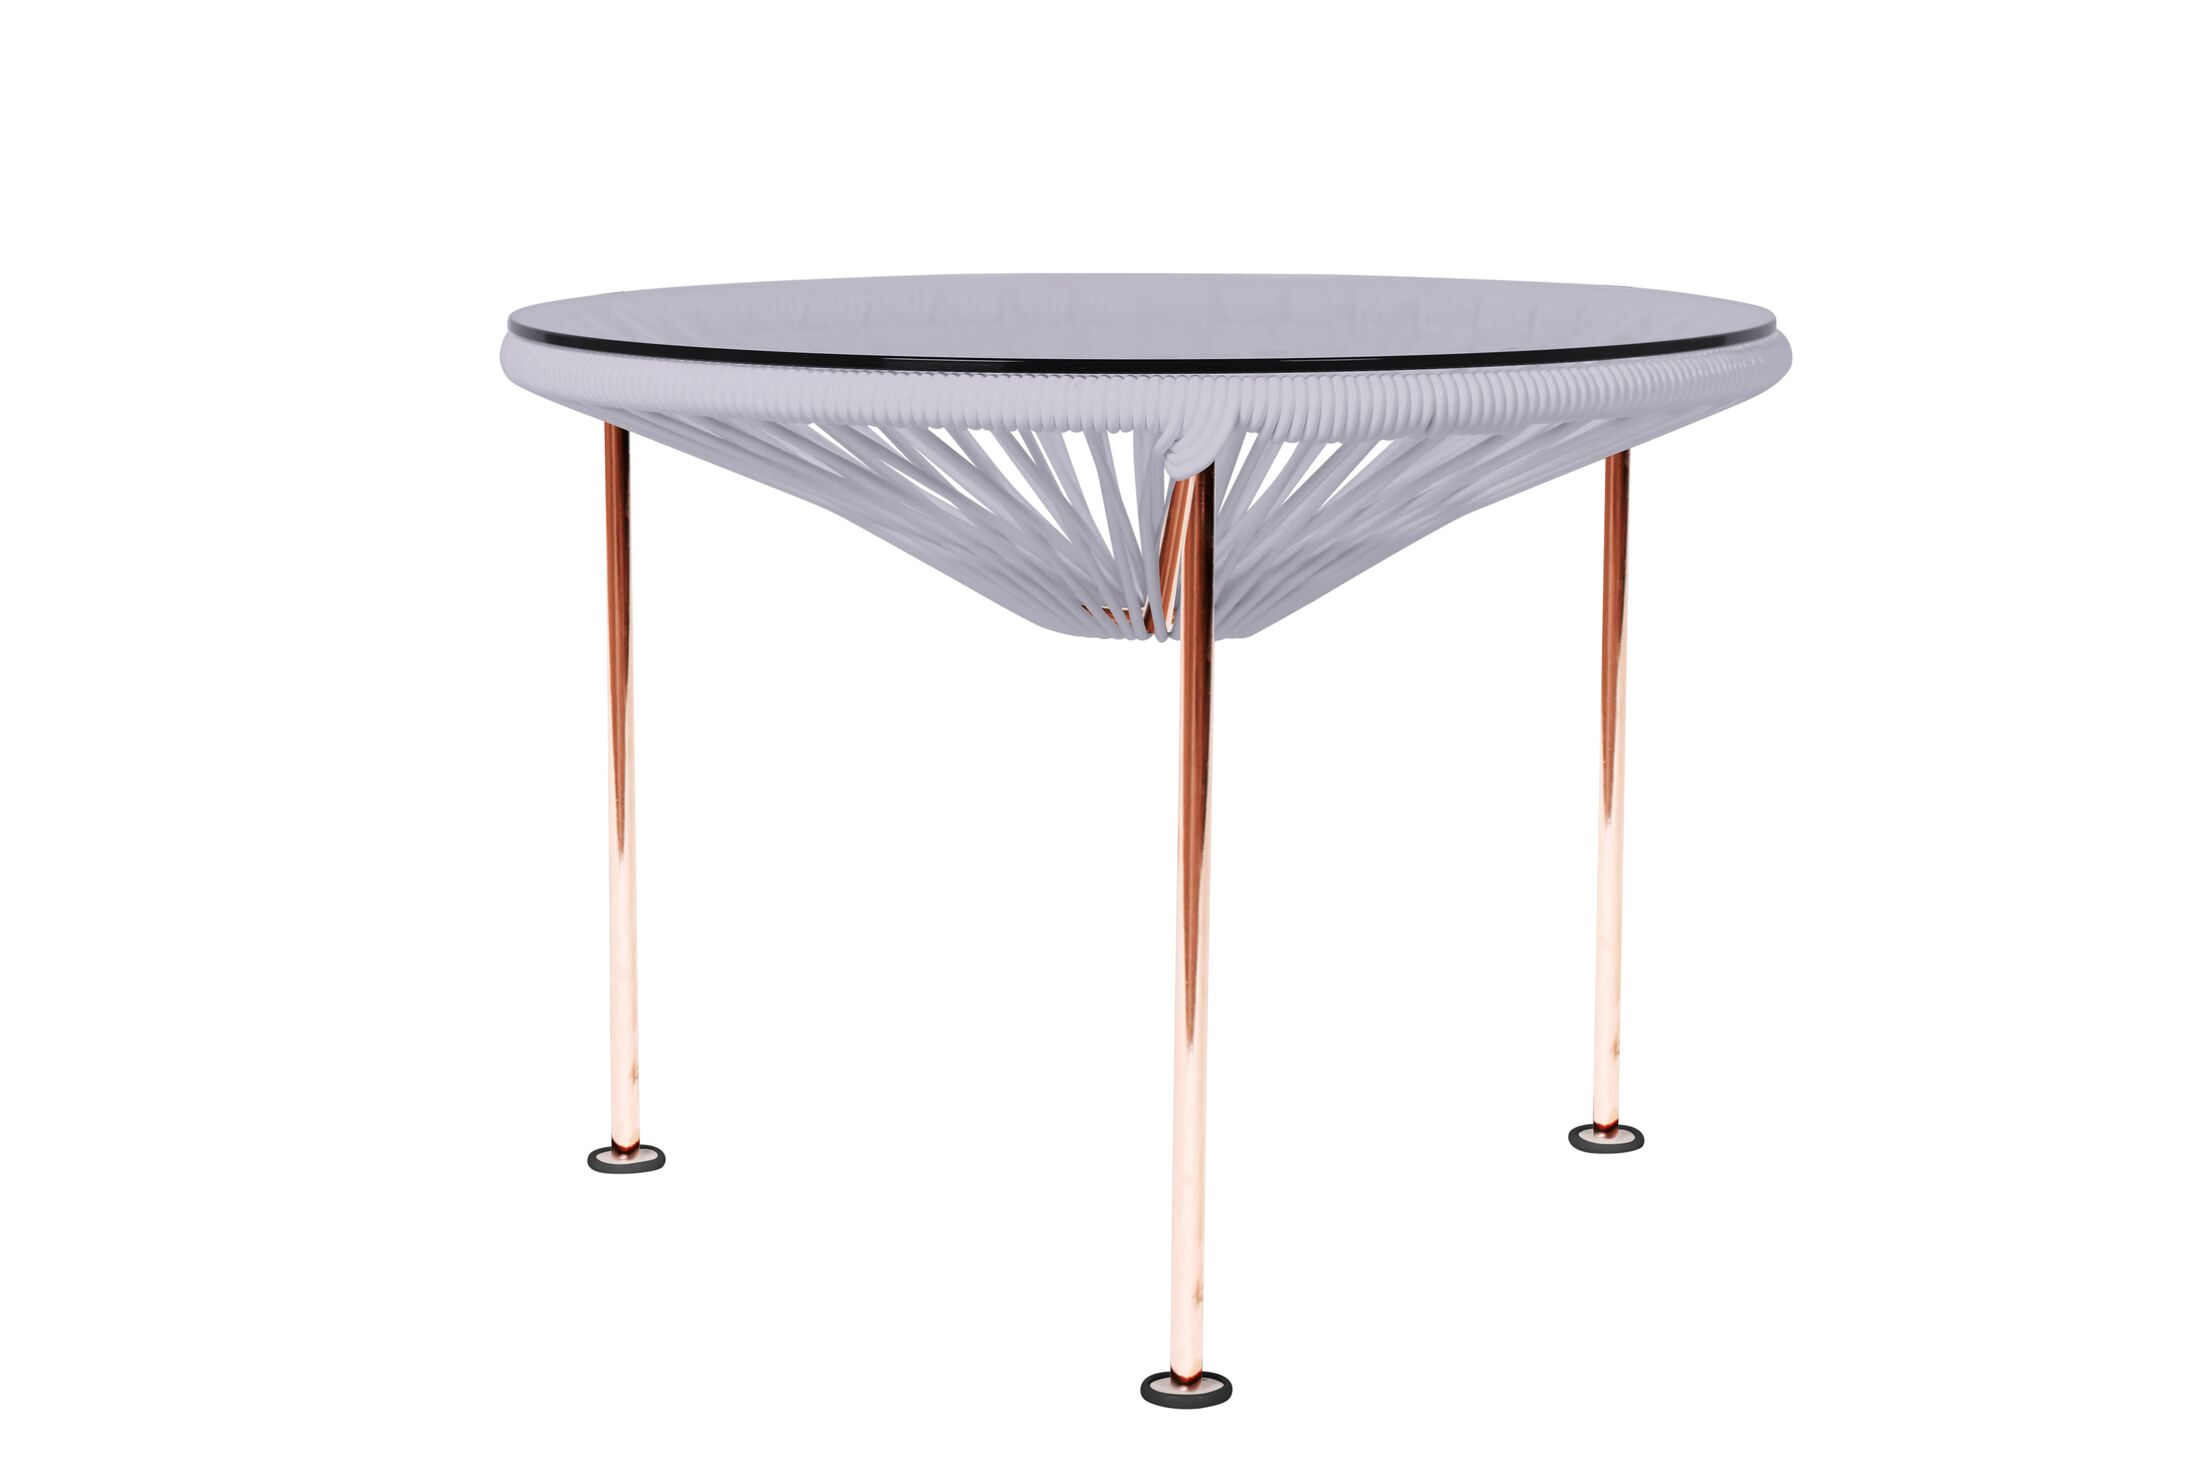 Cobby End Table Table Base Color: Copper, Table Top Color: Clear